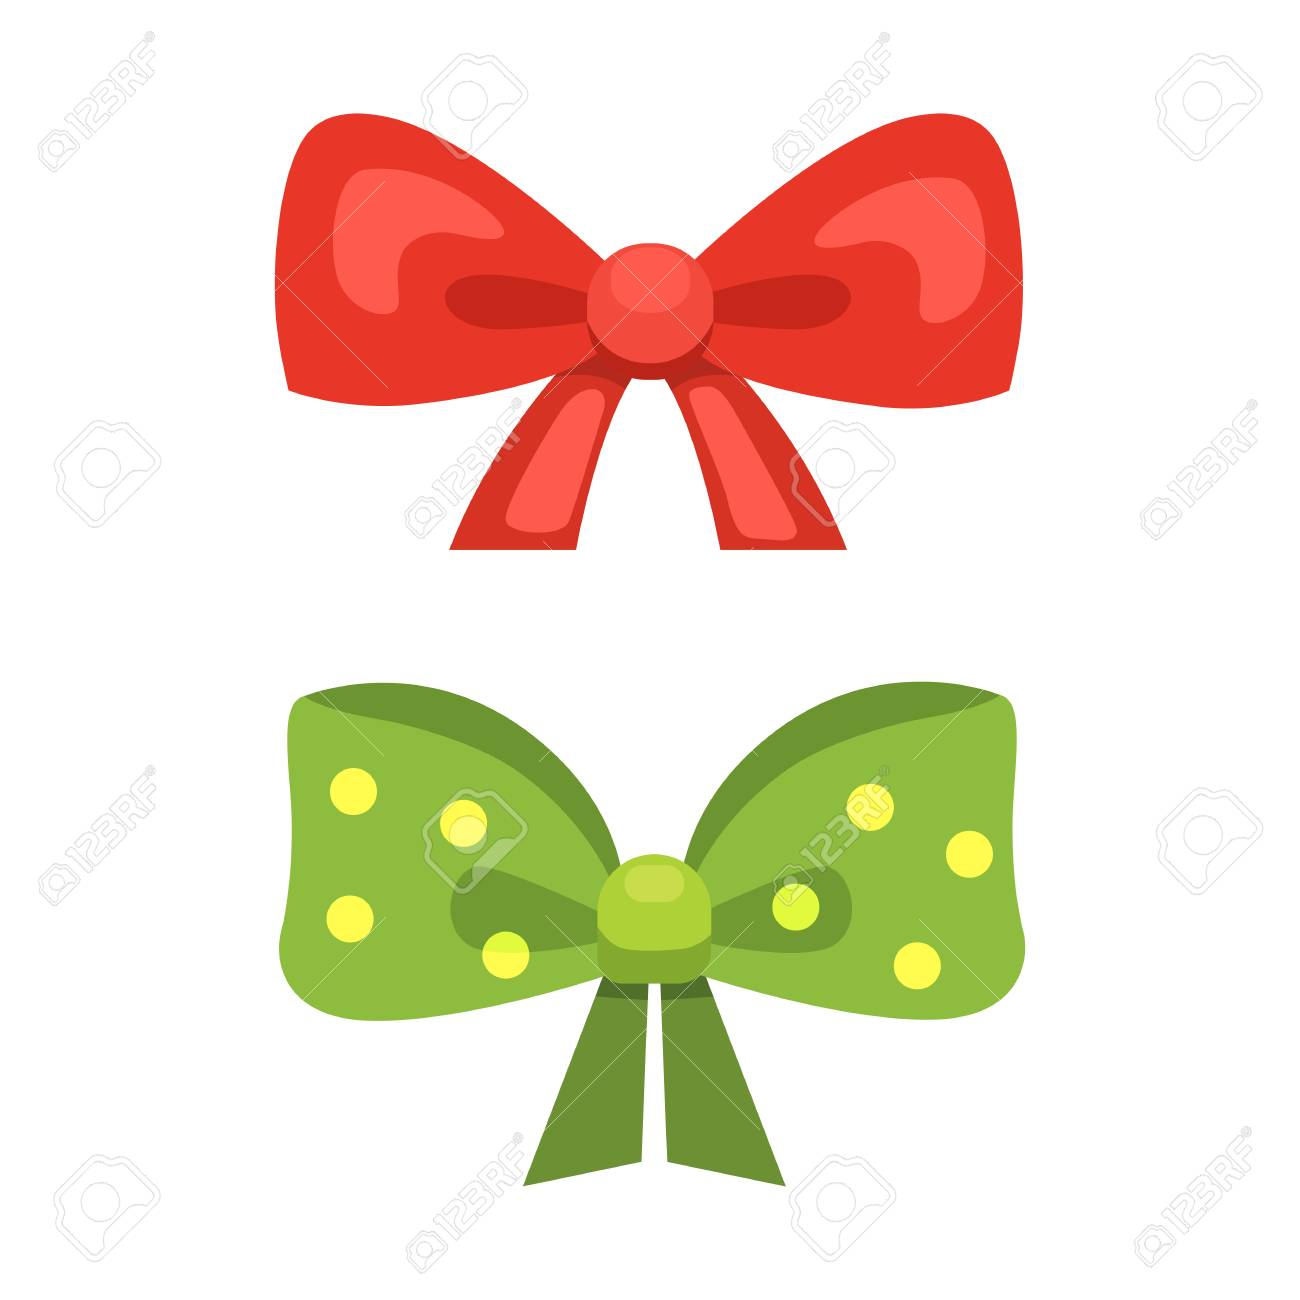 Cartoon cute gift bows with ribbons color butterfly tie cartoon cute gift bows with ribbons color butterfly tie 86087512 negle Images